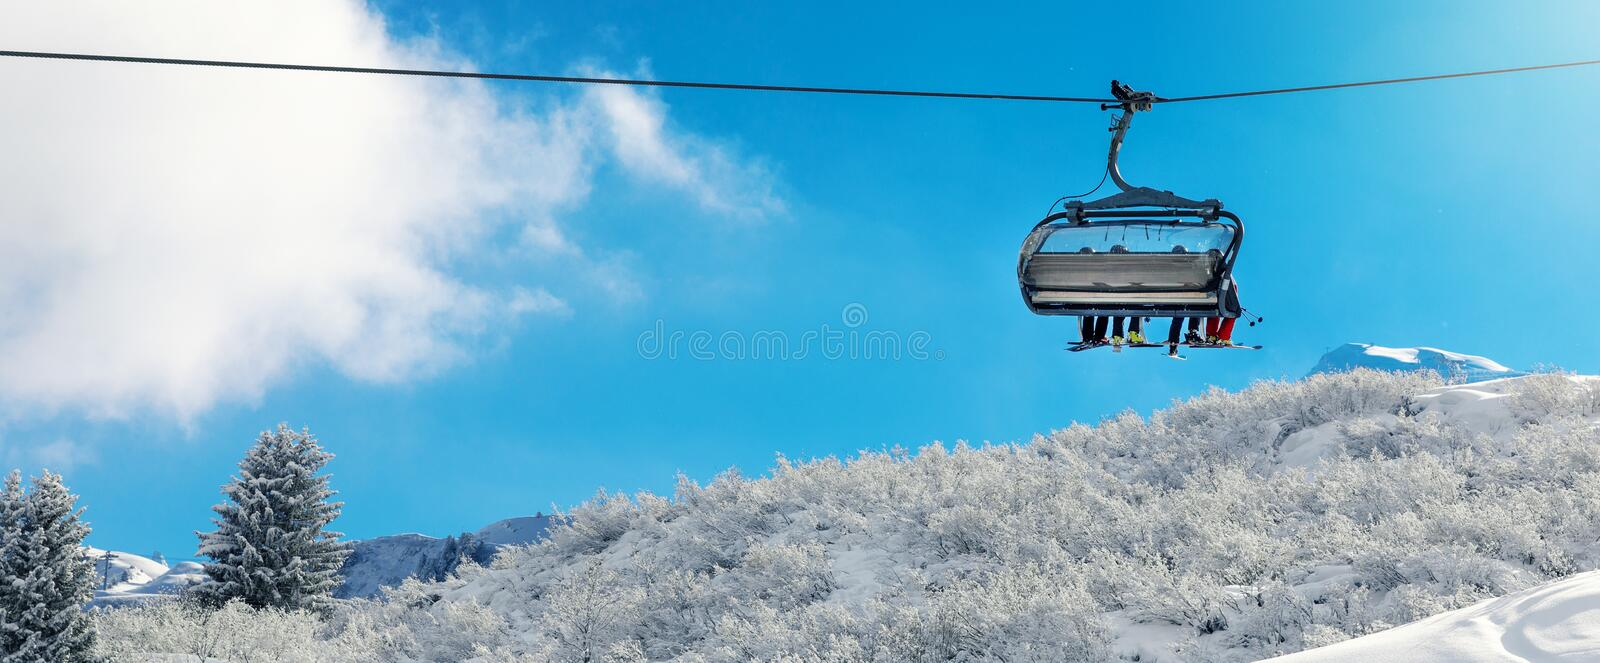 winter vacation - chair lift above snowy mountain landscape royalty free stock photo